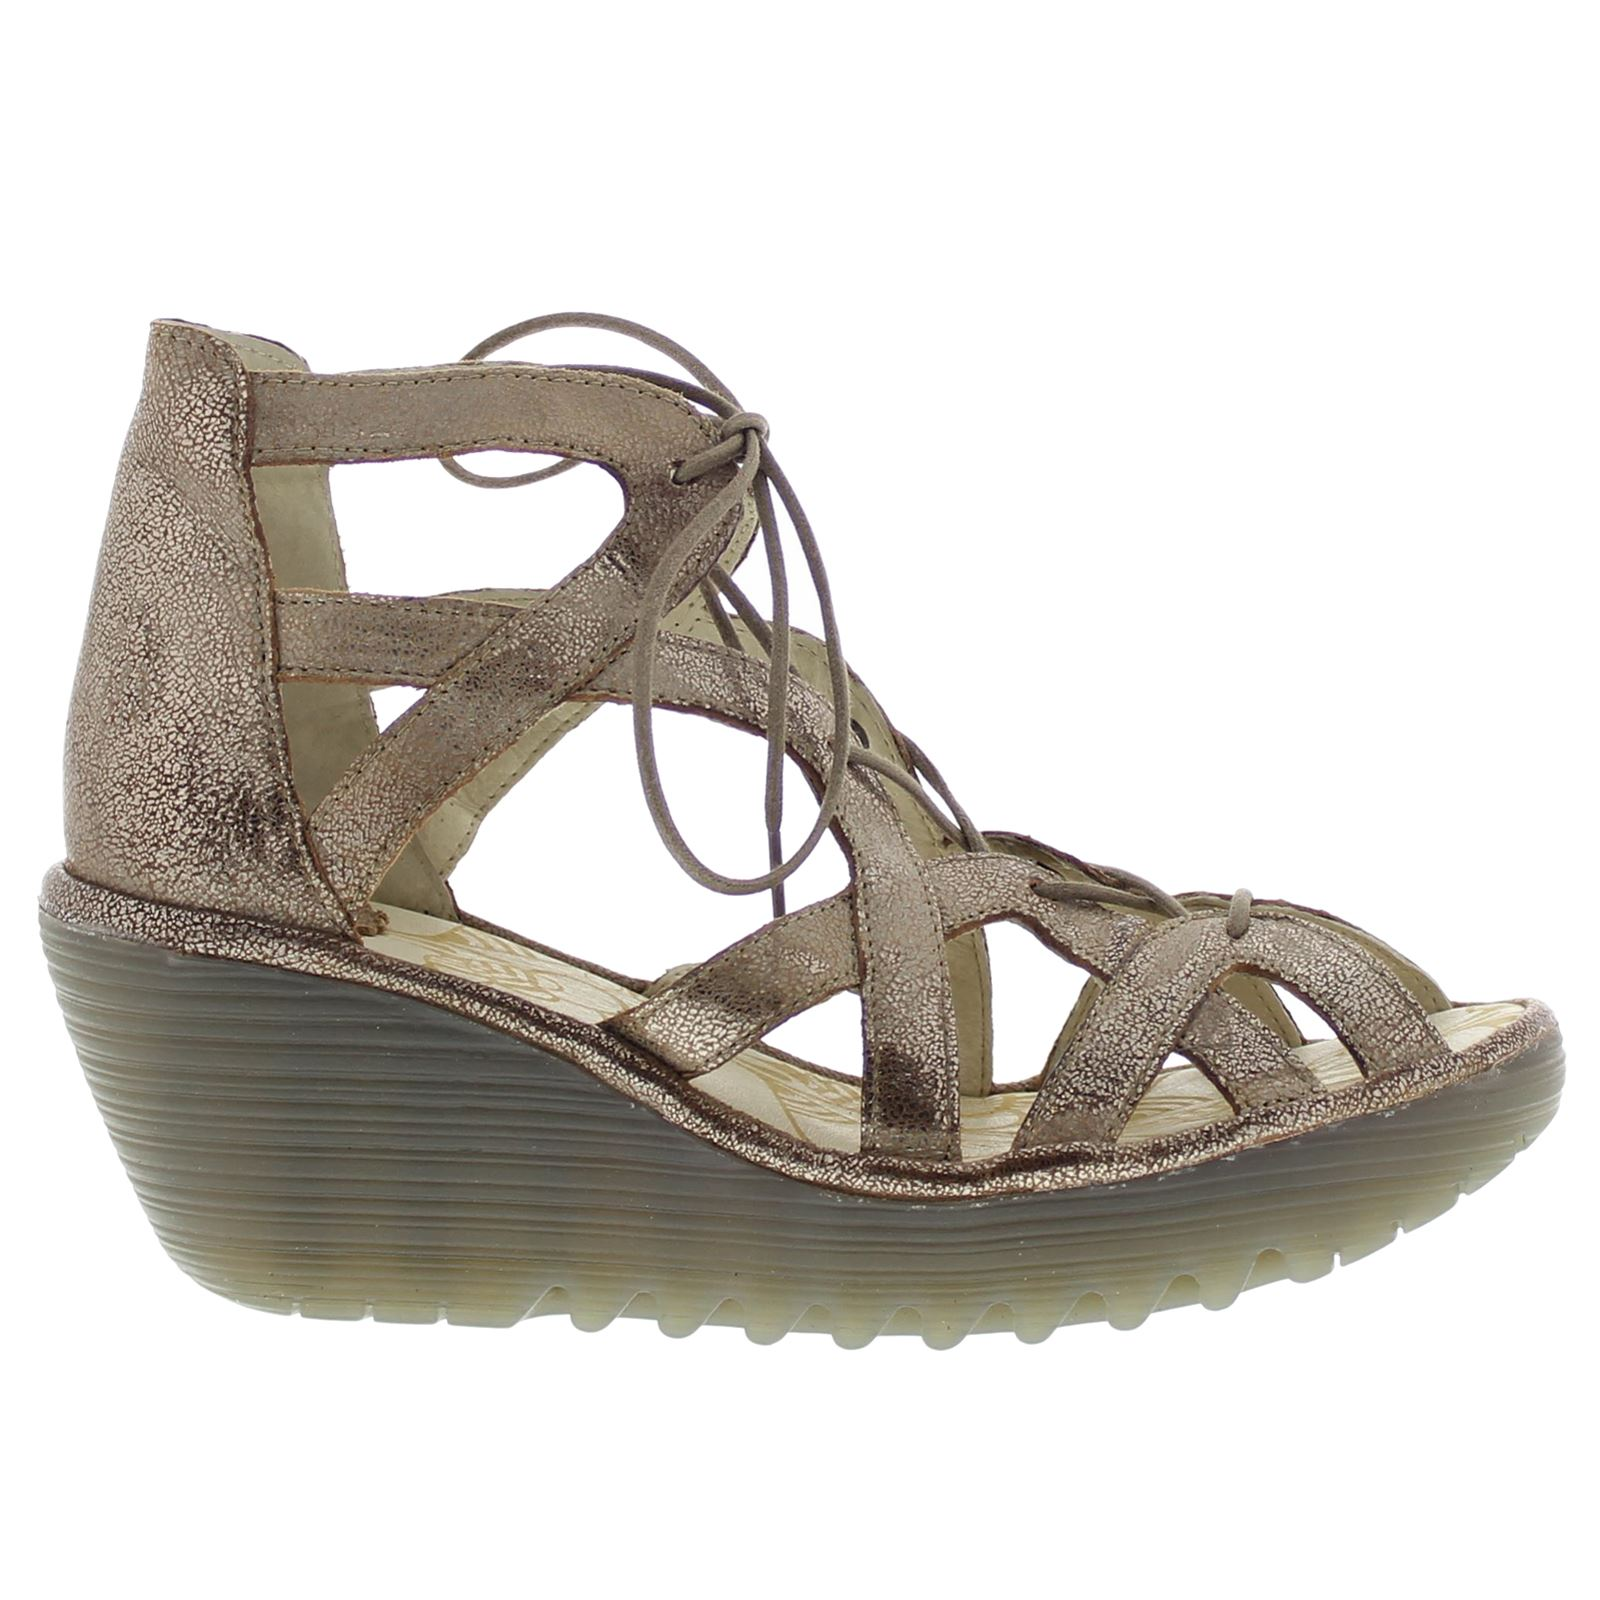 1b5711937453 Fly London YELI719FLY Wedge Gold Womens Sandals